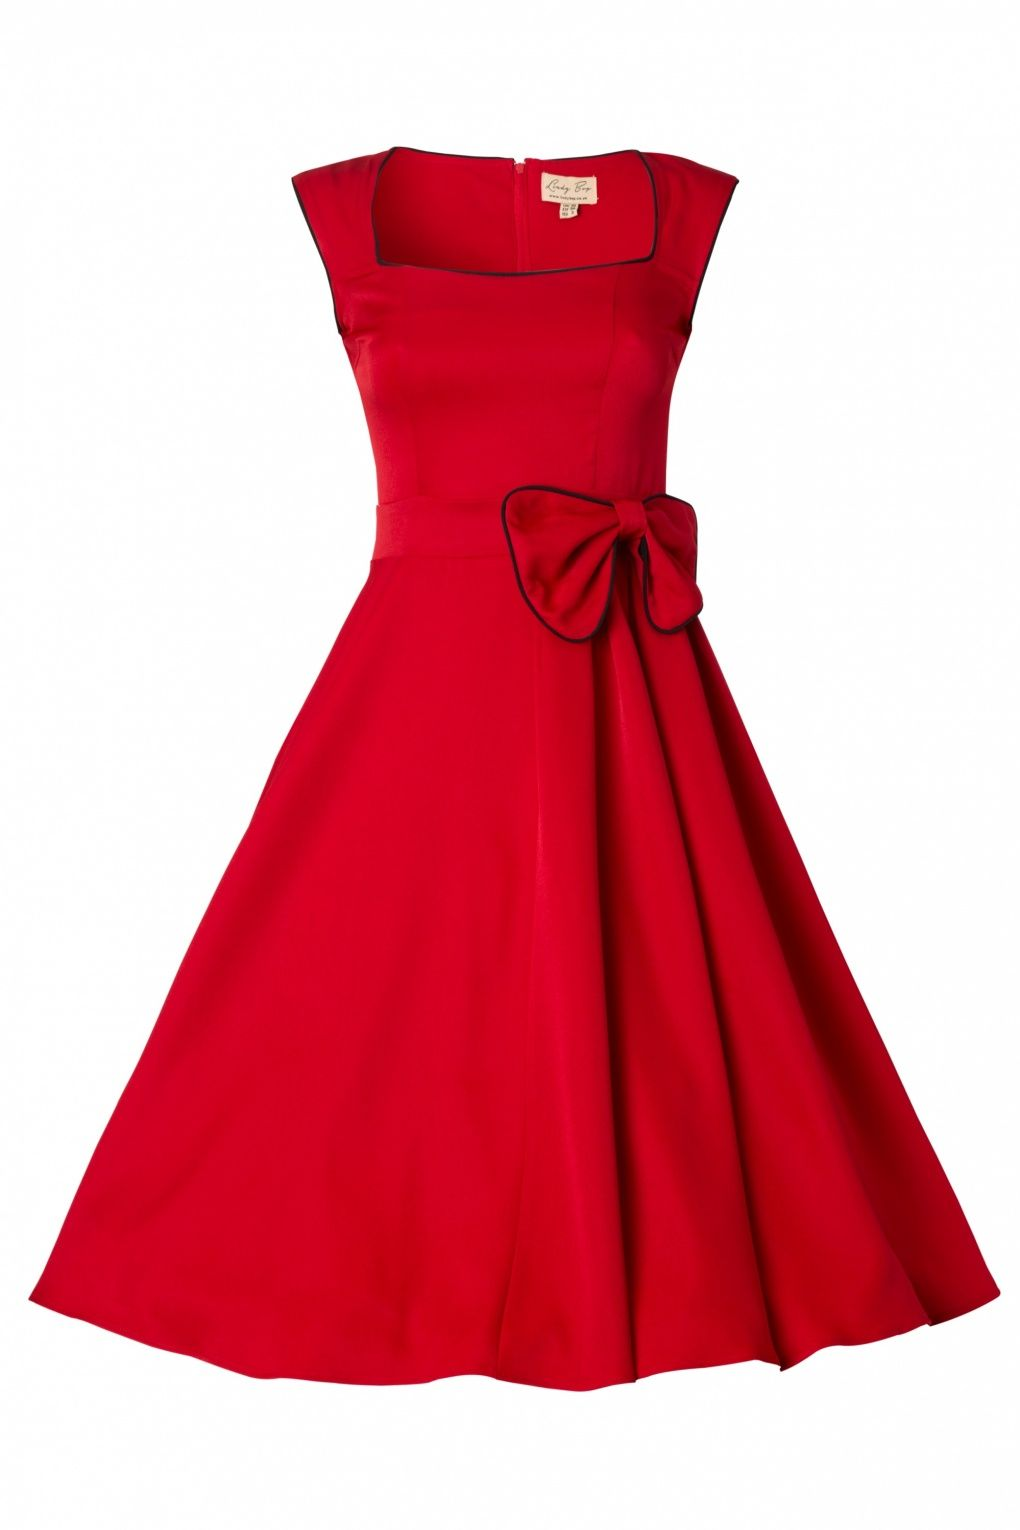 Lindy bop 1950s grace red bow vintage style swing for Lindy bop wedding dress